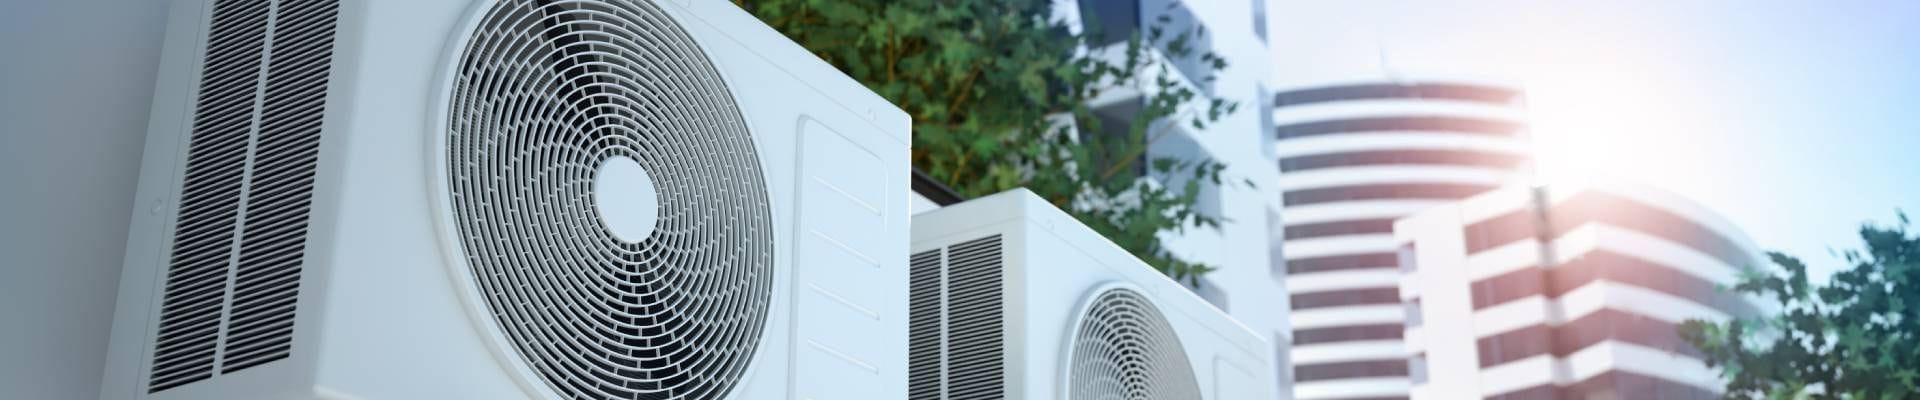 Ambient Mechanical HVAC company service Commercial buildings